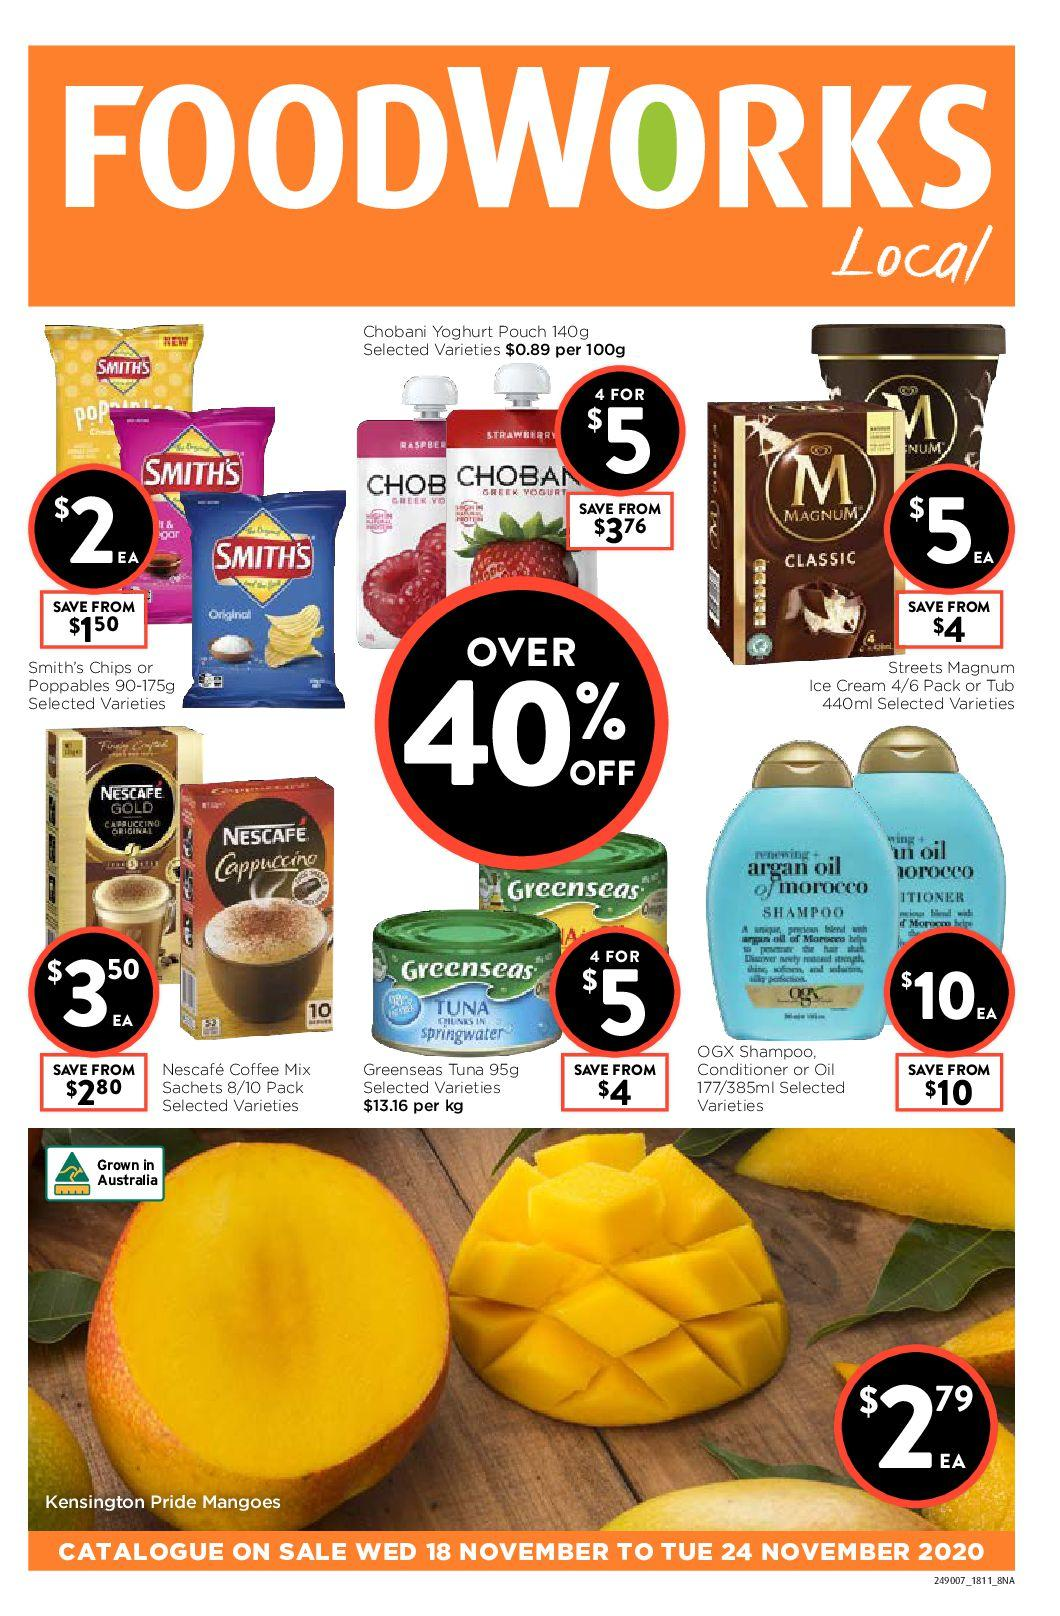 FoodWorks Catalogues from November 18